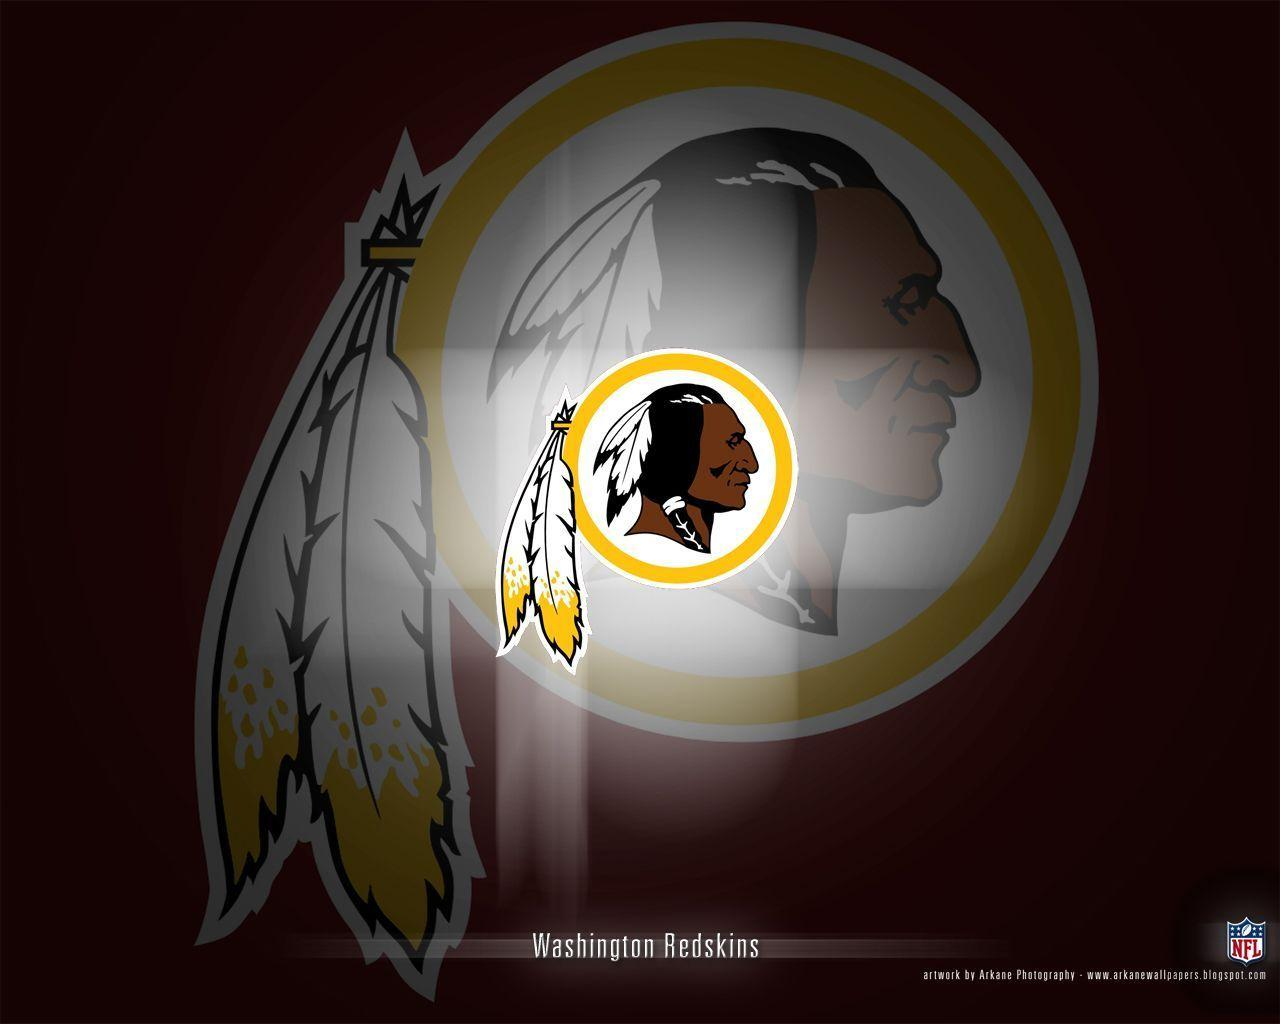 Washington Redskins Wallpapers Pictures 26839 Image